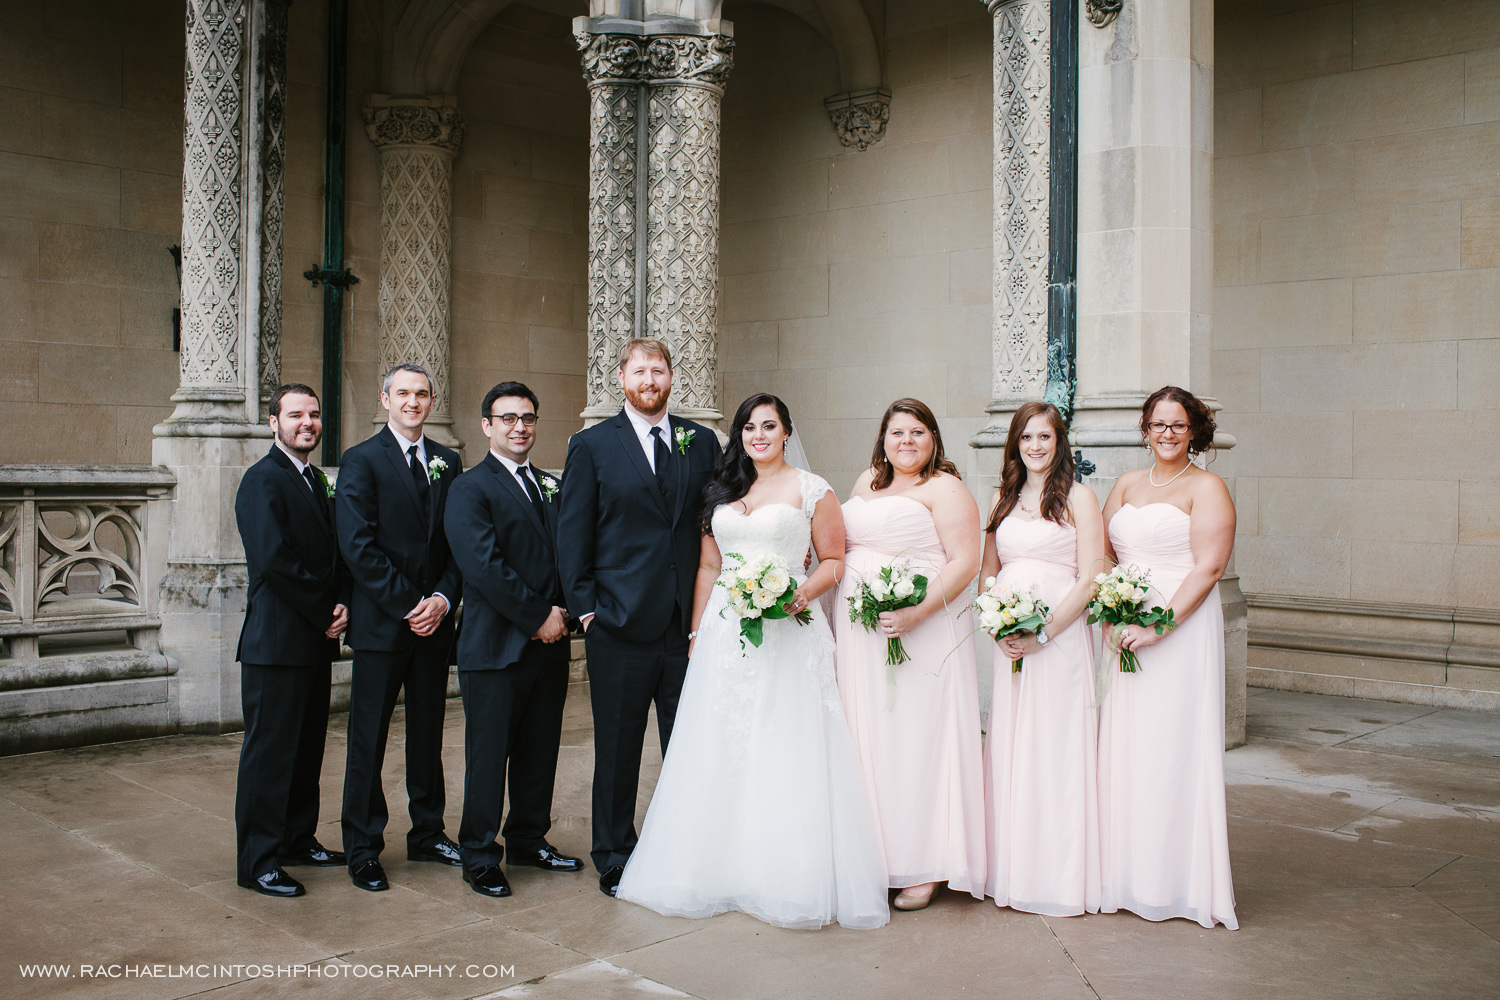 Biltmore Wedding Portraits-Rachael McIntosh Photography-1-6.jpg